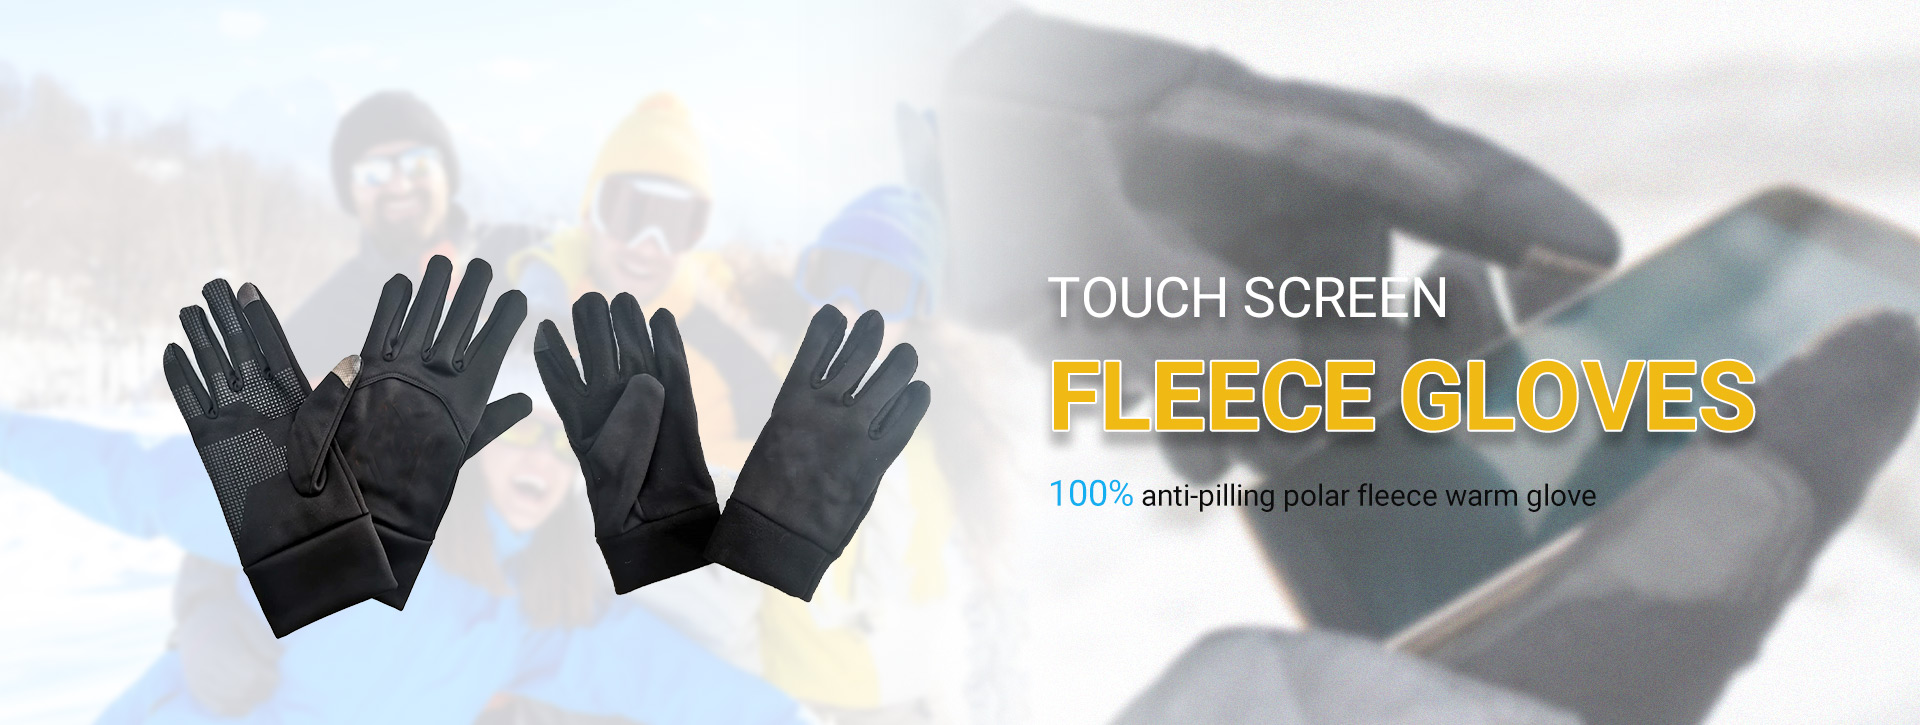 Touch Screen Fleece Glove